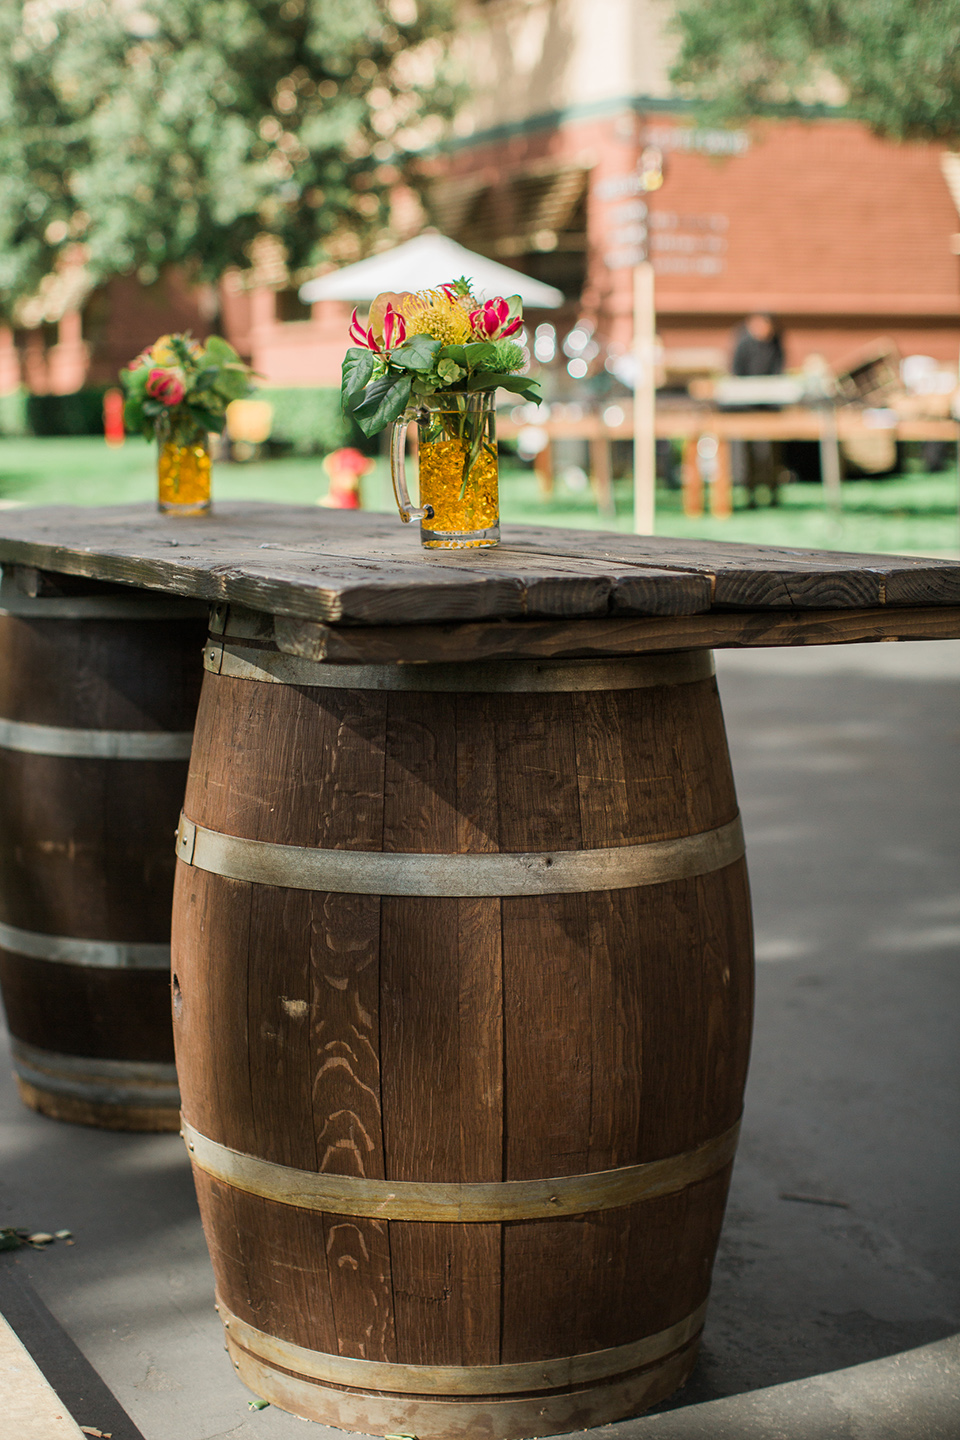 Tropical Theme wine barrels